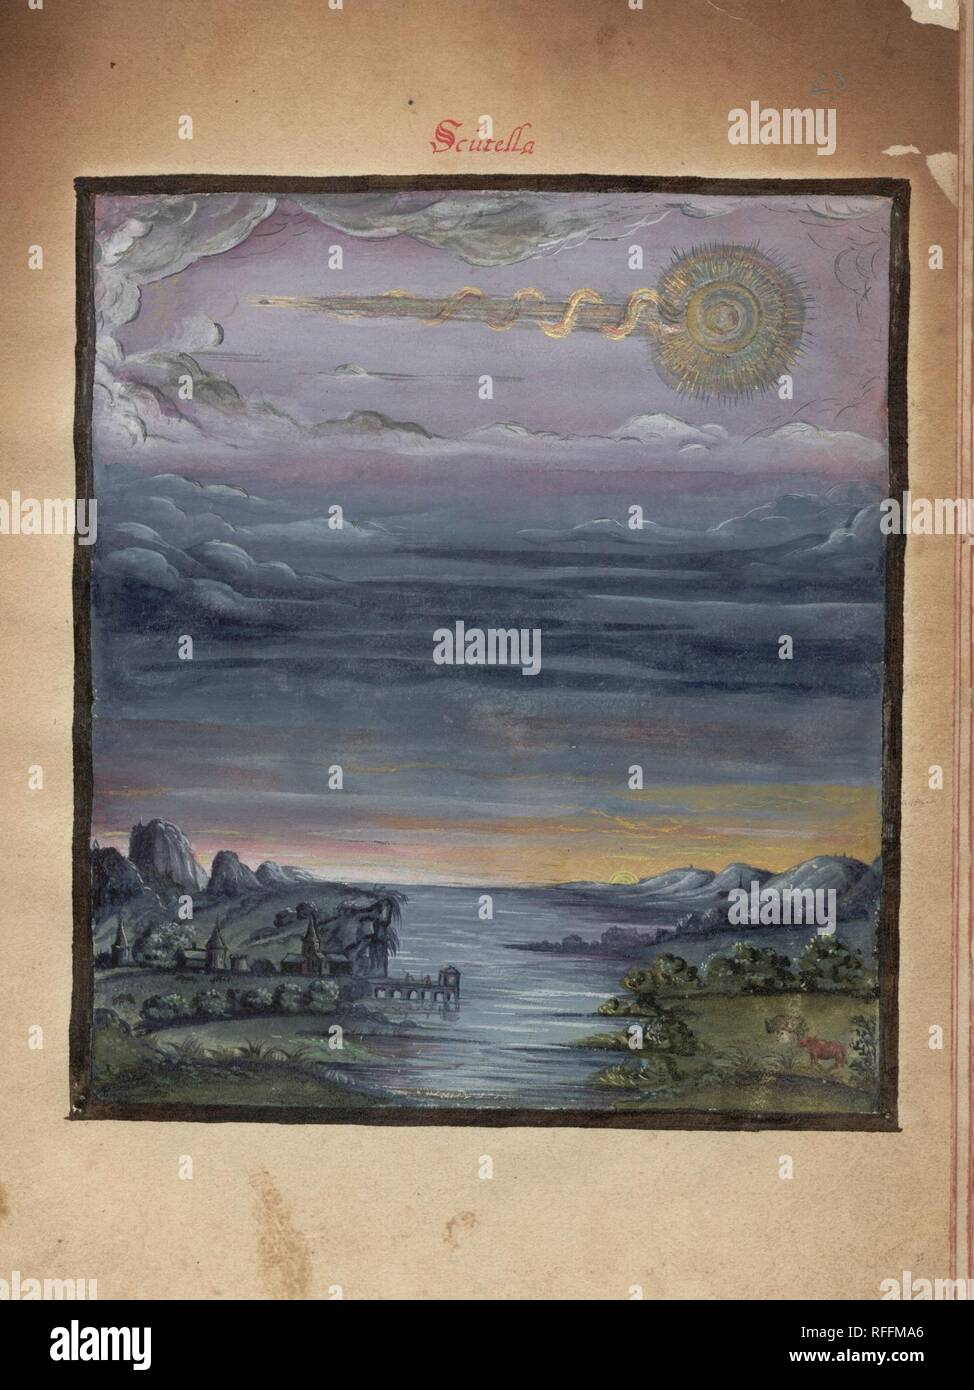 The Comet Book ('Kometenbuch') is a 16th century album of stylised watercolour sketches of both comets and meteors - Scutella a.jpg - RFFMA6 1RFFMA6 - Stock Image